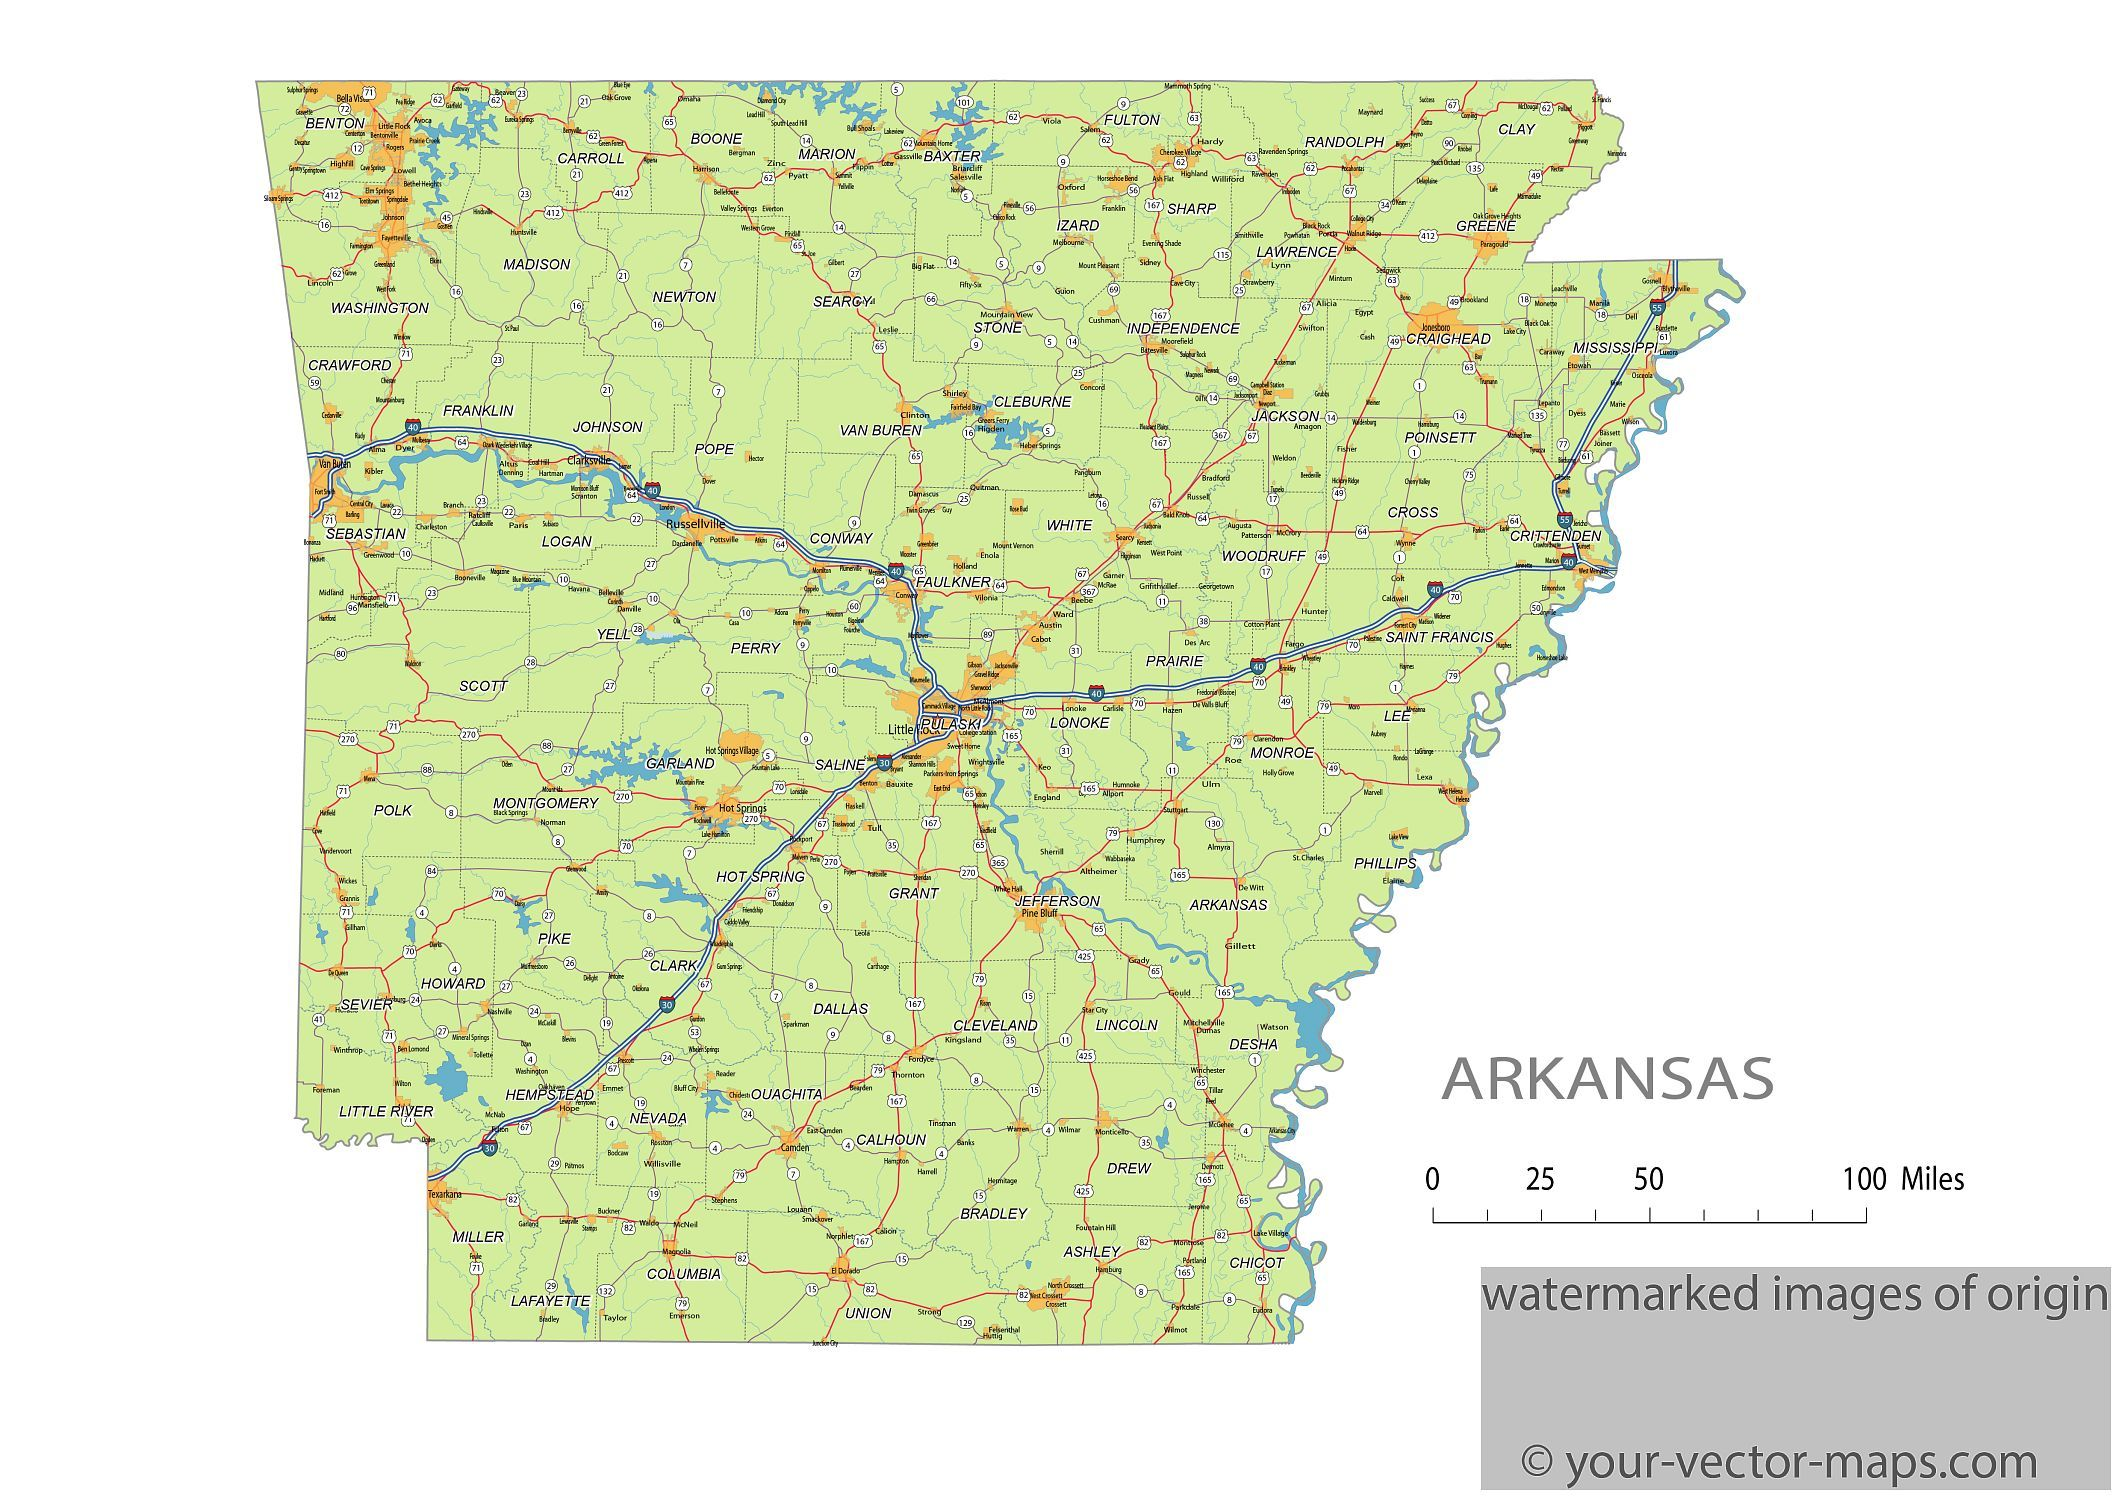 Akansas state route network. Arkansas highways map. Cities of ...